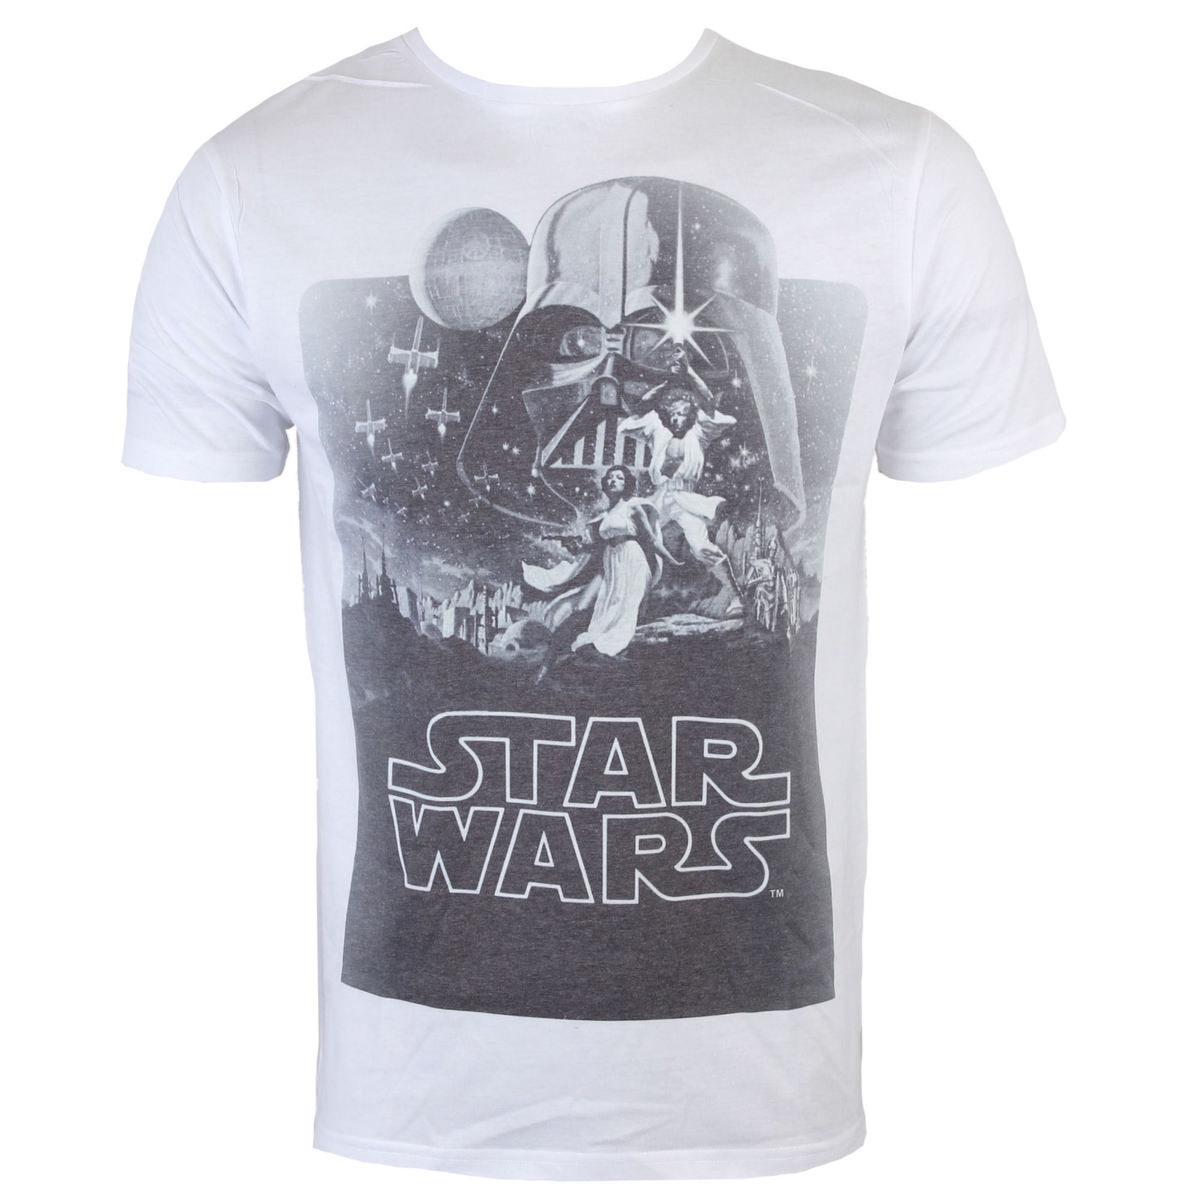 INDIEGO Star Wars Darth Vader Sublimation šedá bílá